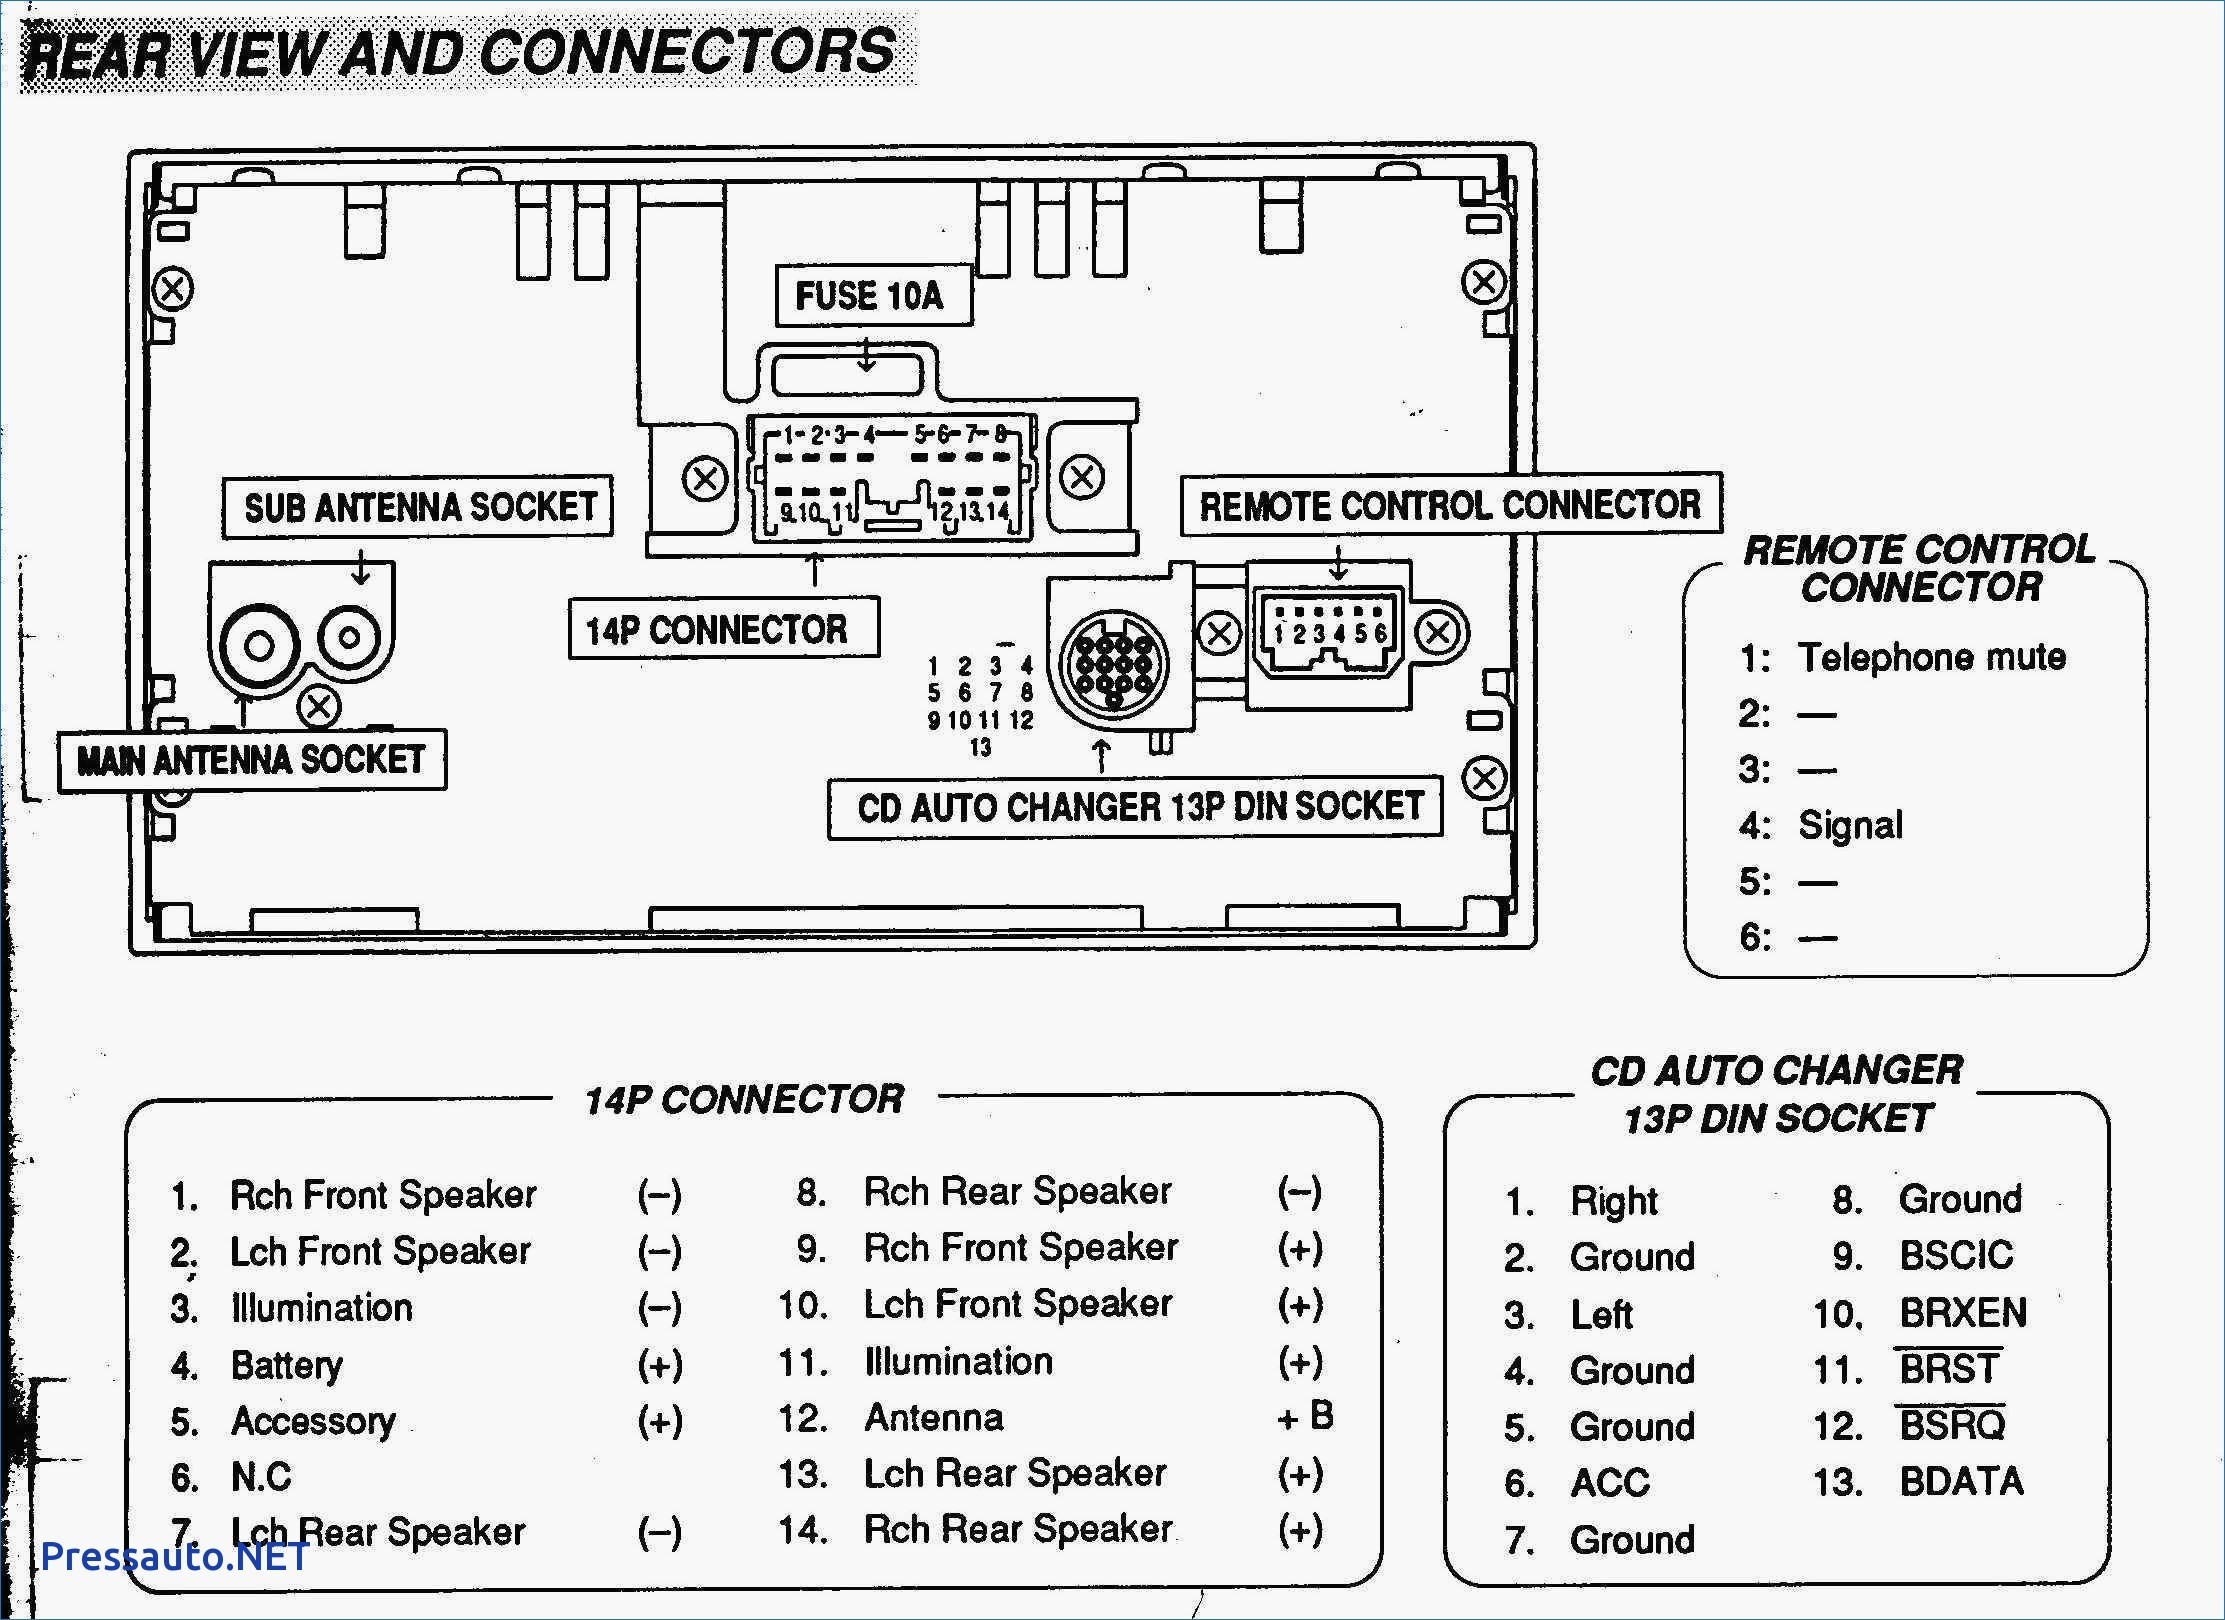 2002 Vw Jetta Engine Diagram 03 Jetta 2 0 Engine Diagram Another Blog About Wiring Diagram • Of 2002 Vw Jetta Engine Diagram